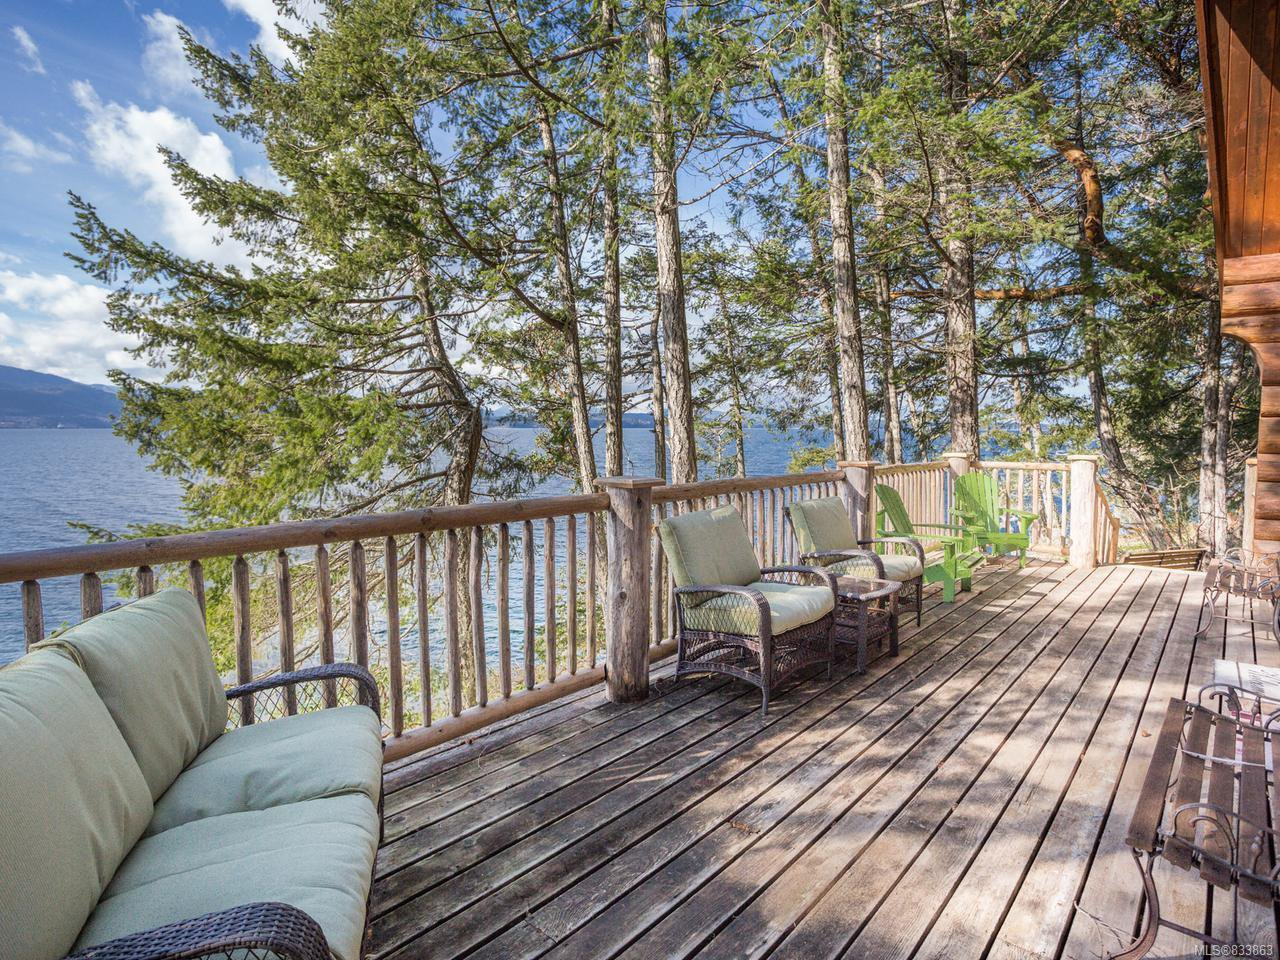 Photo 23: Photos: 255 Forbes Dr in THETIS ISLAND: Isl Thetis Island House for sale (Islands)  : MLS®# 833863